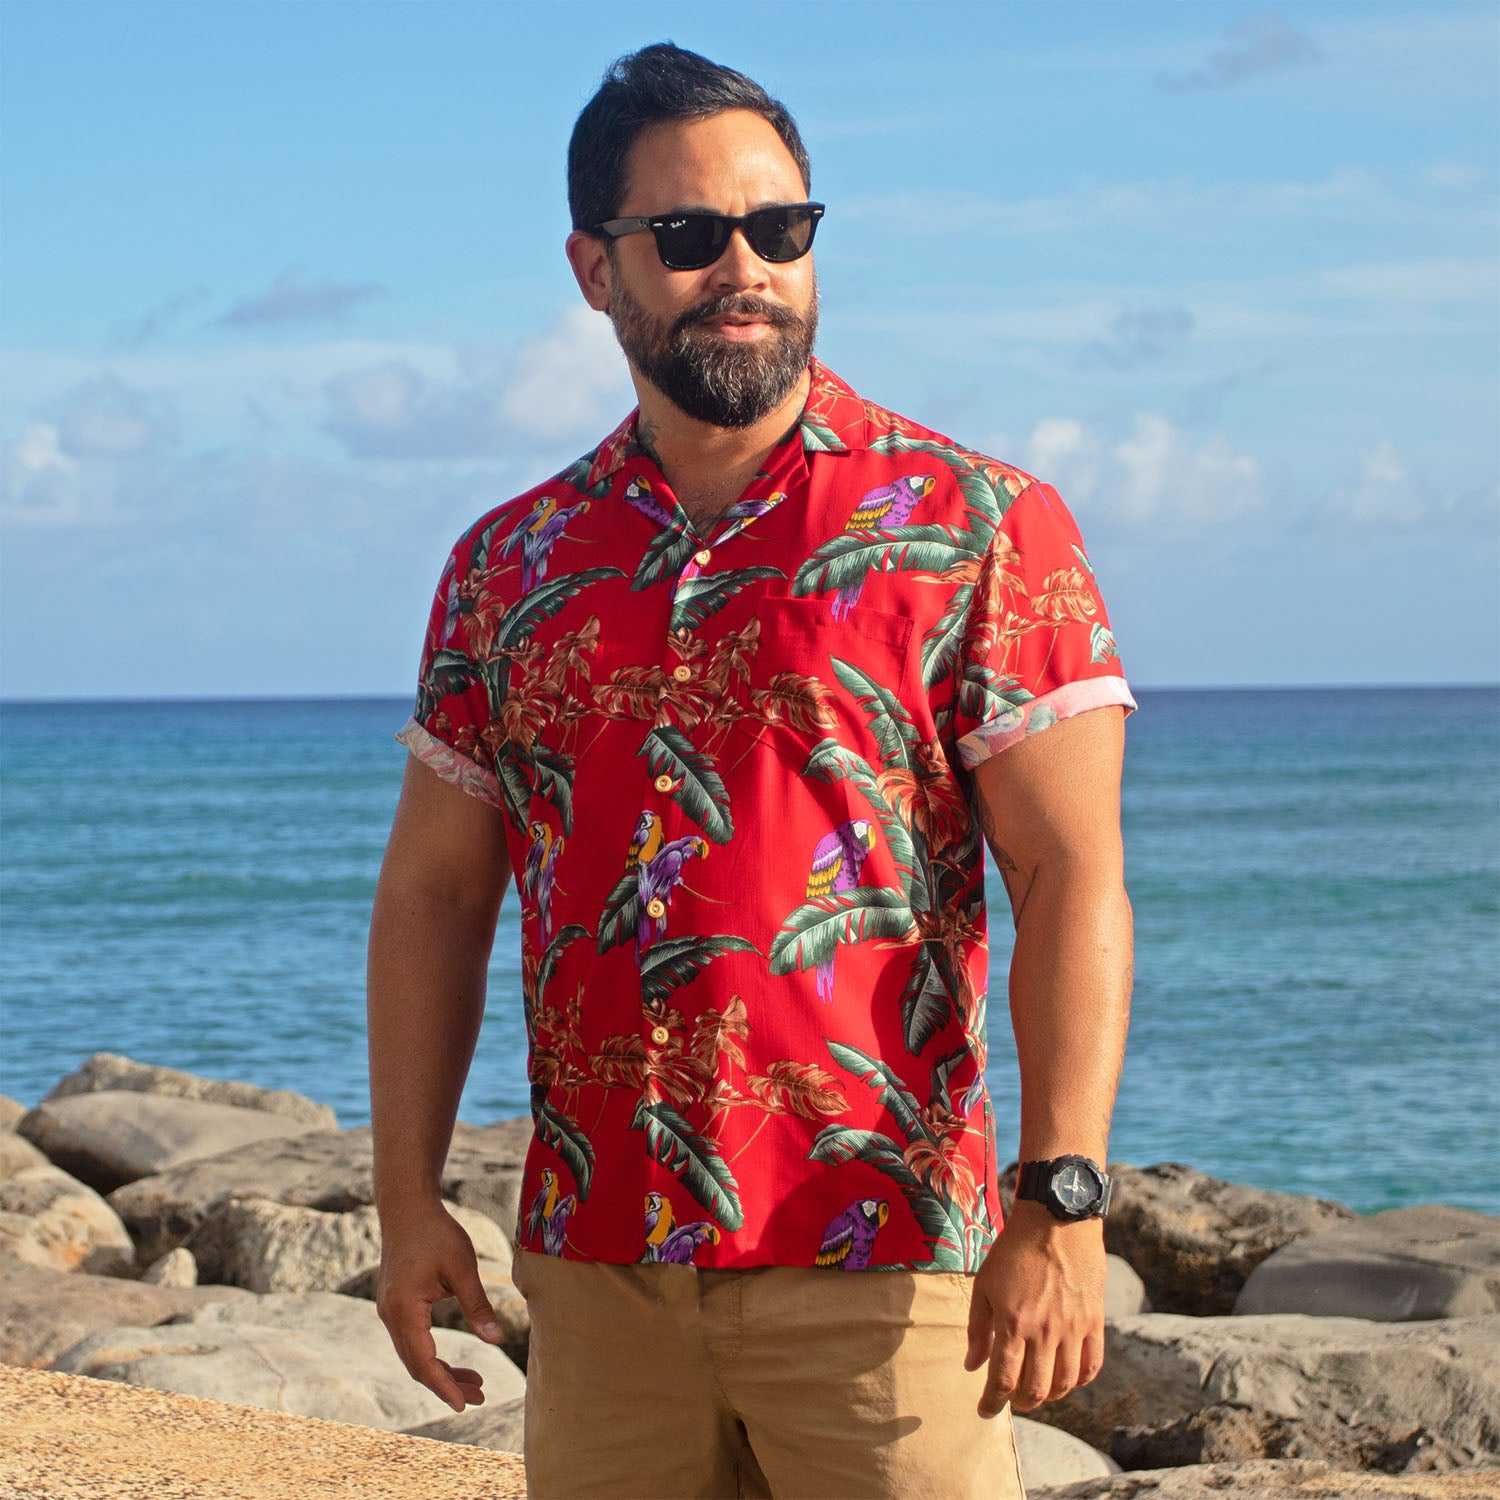 d9297afb Hawaiian Shirts & Hawaiian Fashion - AlohaFunWear.com